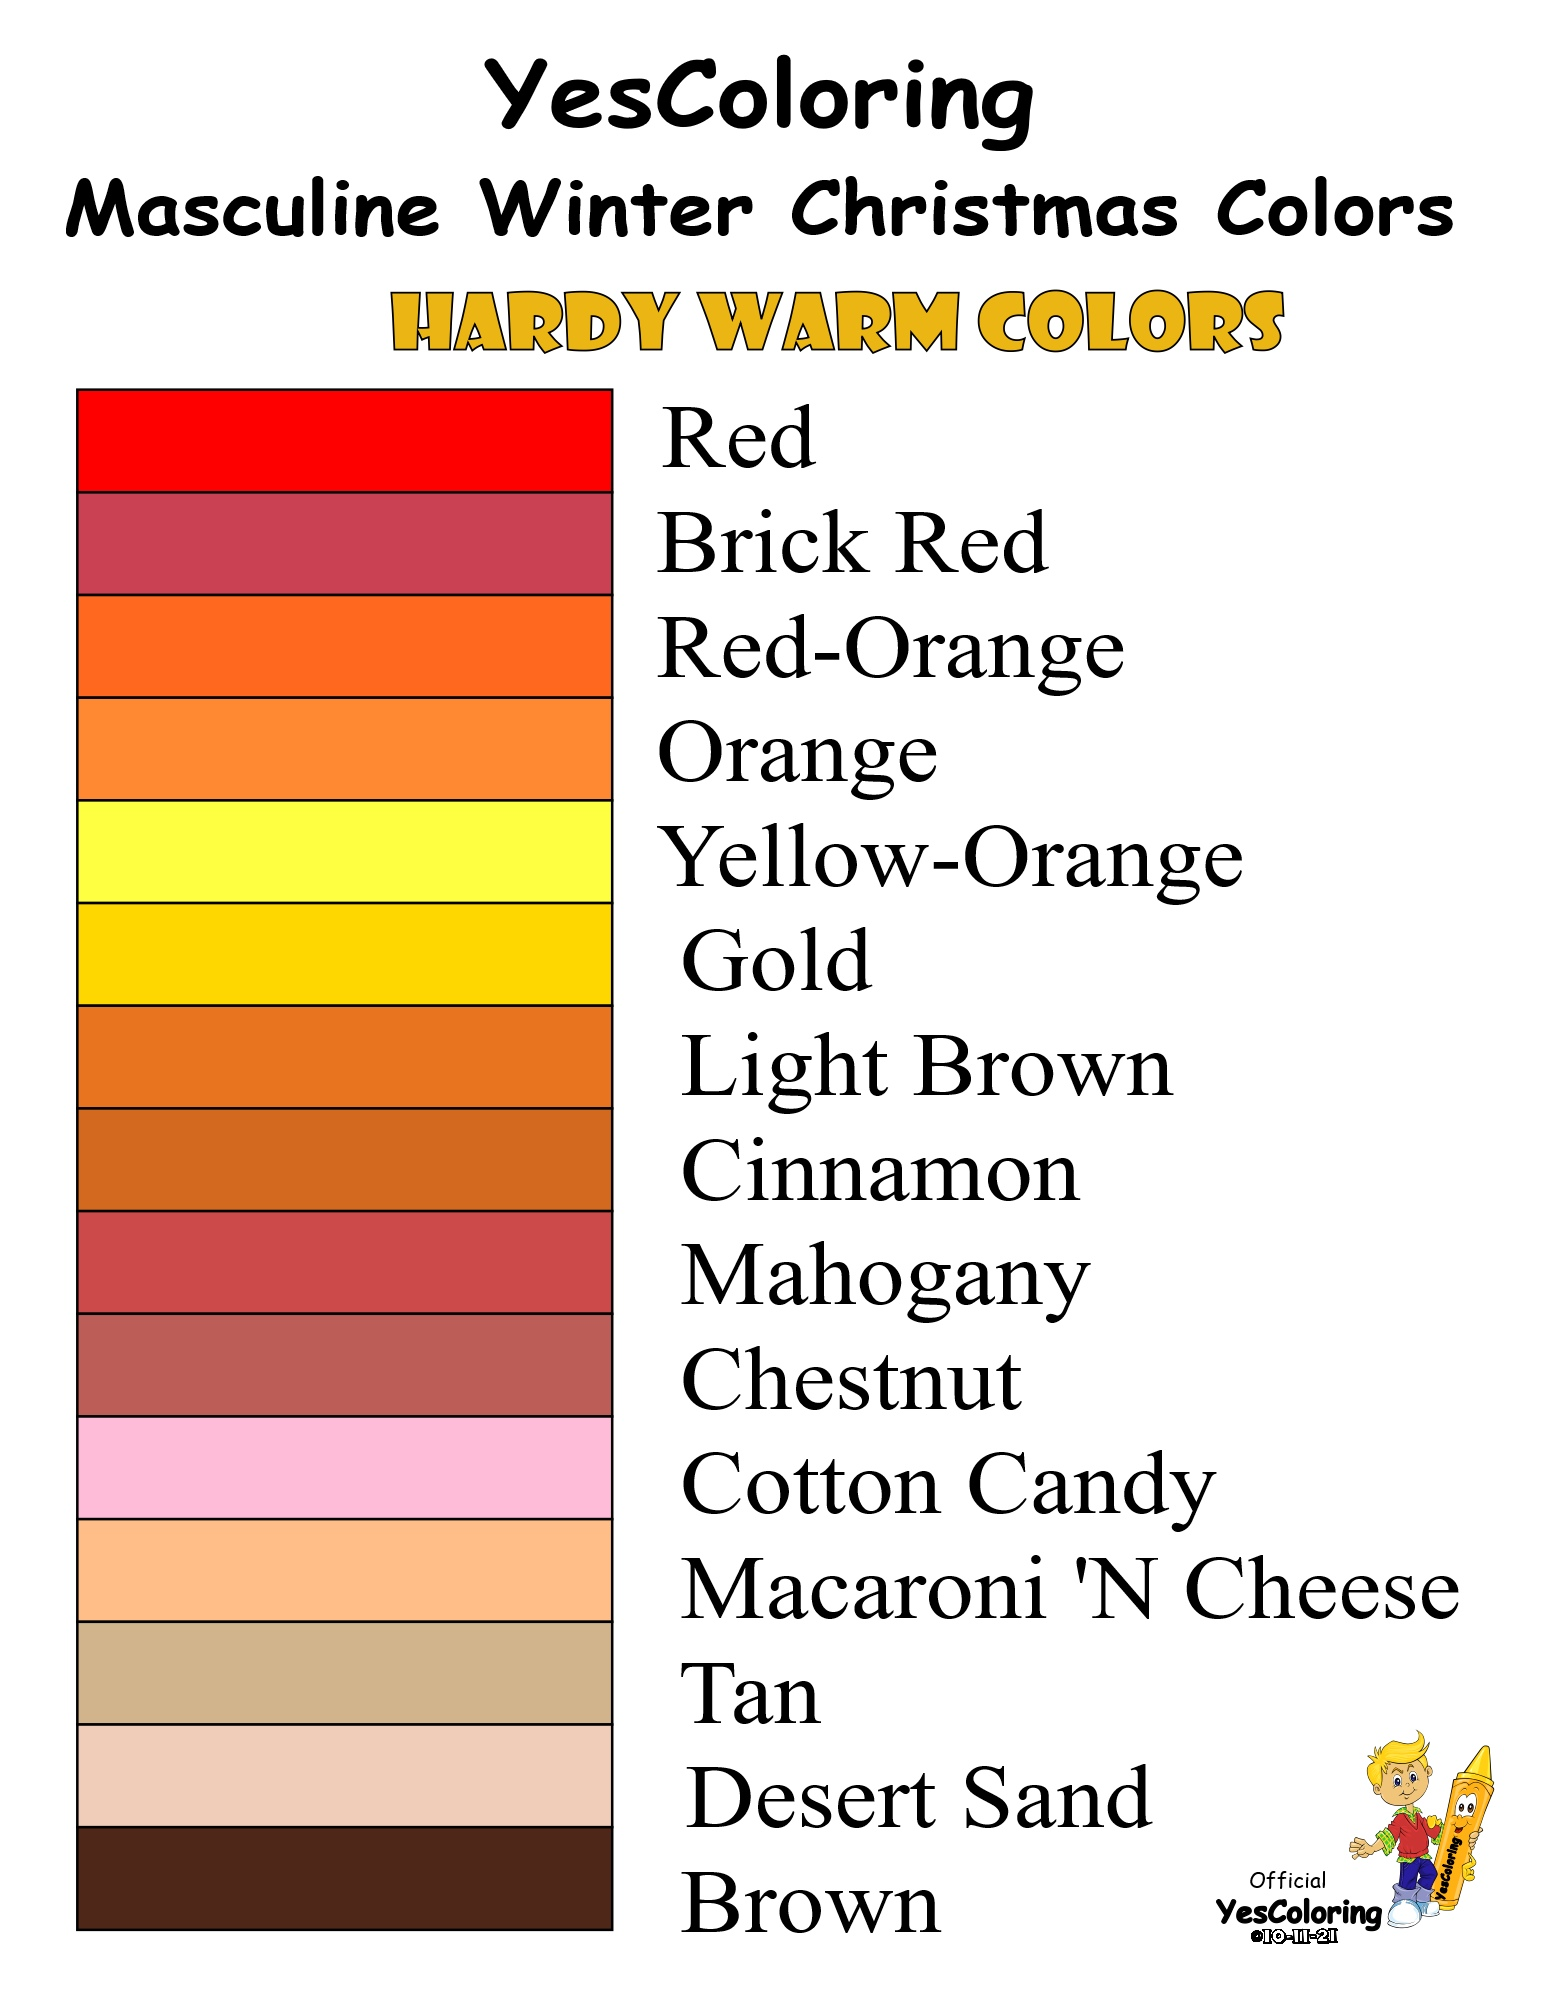 YesColoring 15 Masculine Warm Winter Christmas Colors Chart at YesColoring